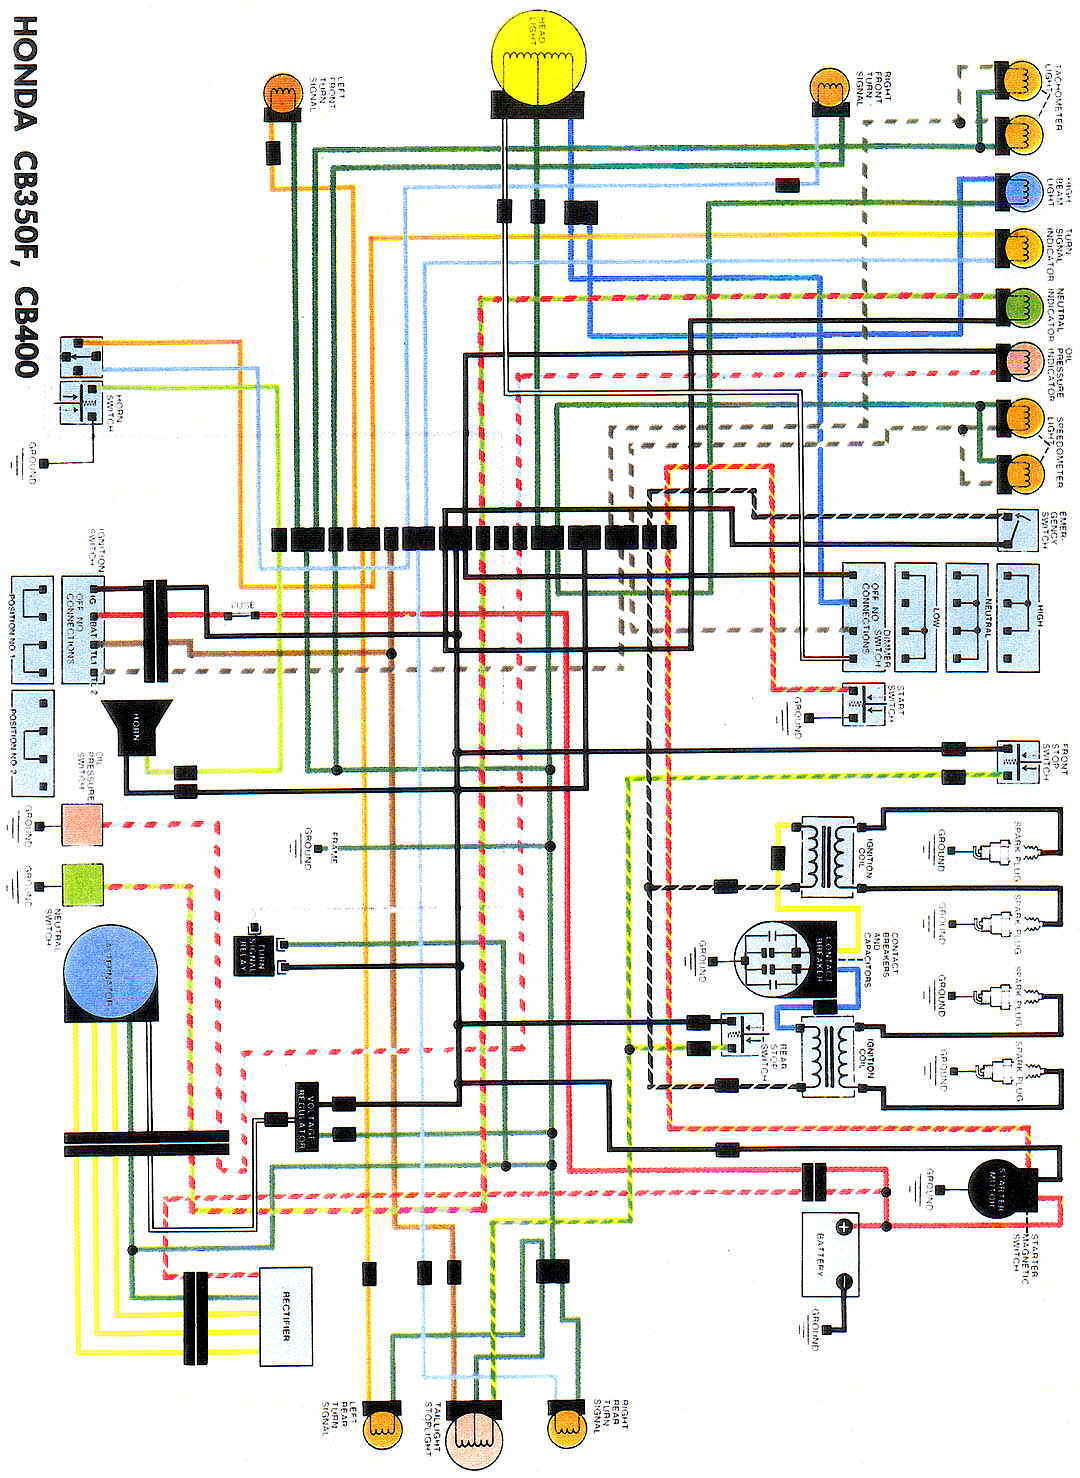 CB350F_CB400WiringDiag cb400 rectifier faq honda ft500 ignition system wiring diagram at gsmportal.co